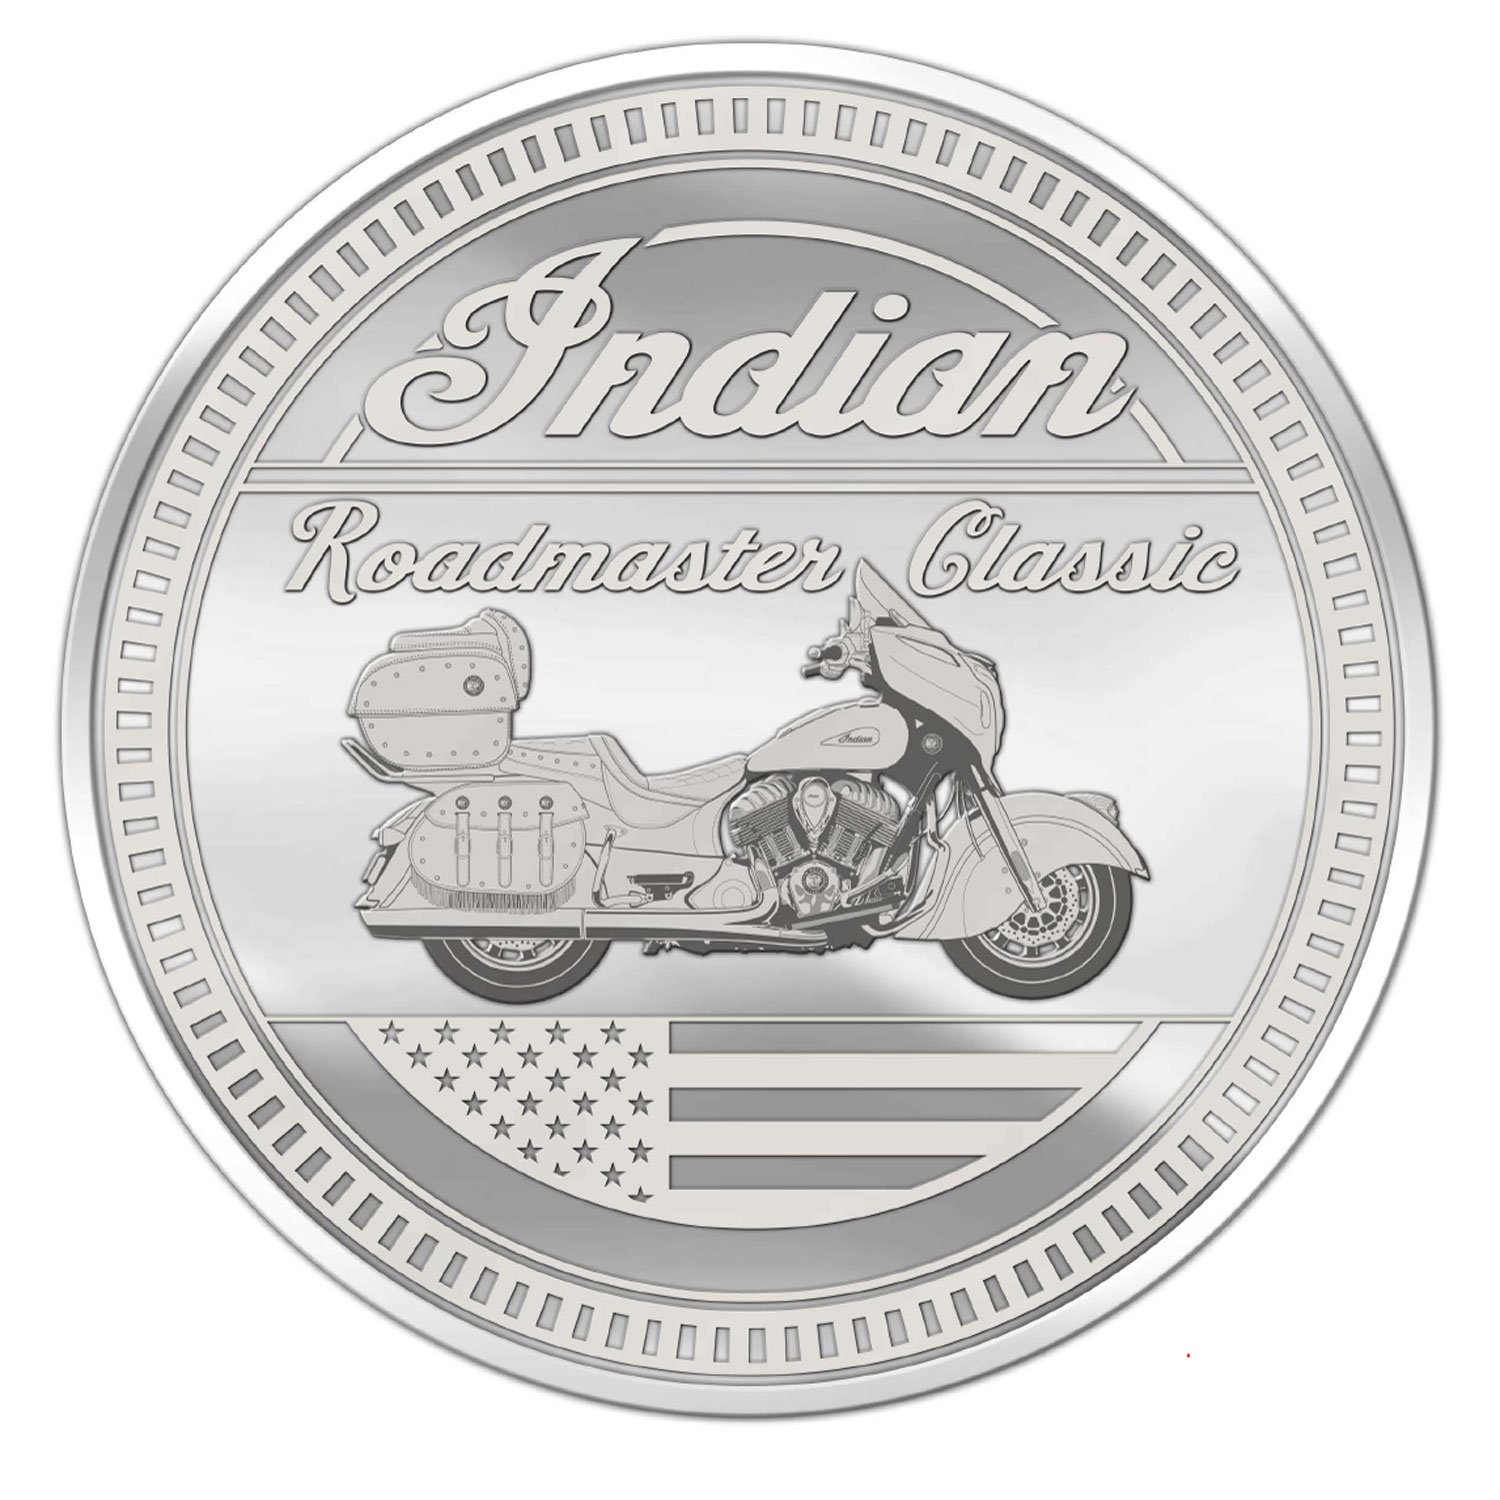 Commemorative Coin – Roadmaster® Classic